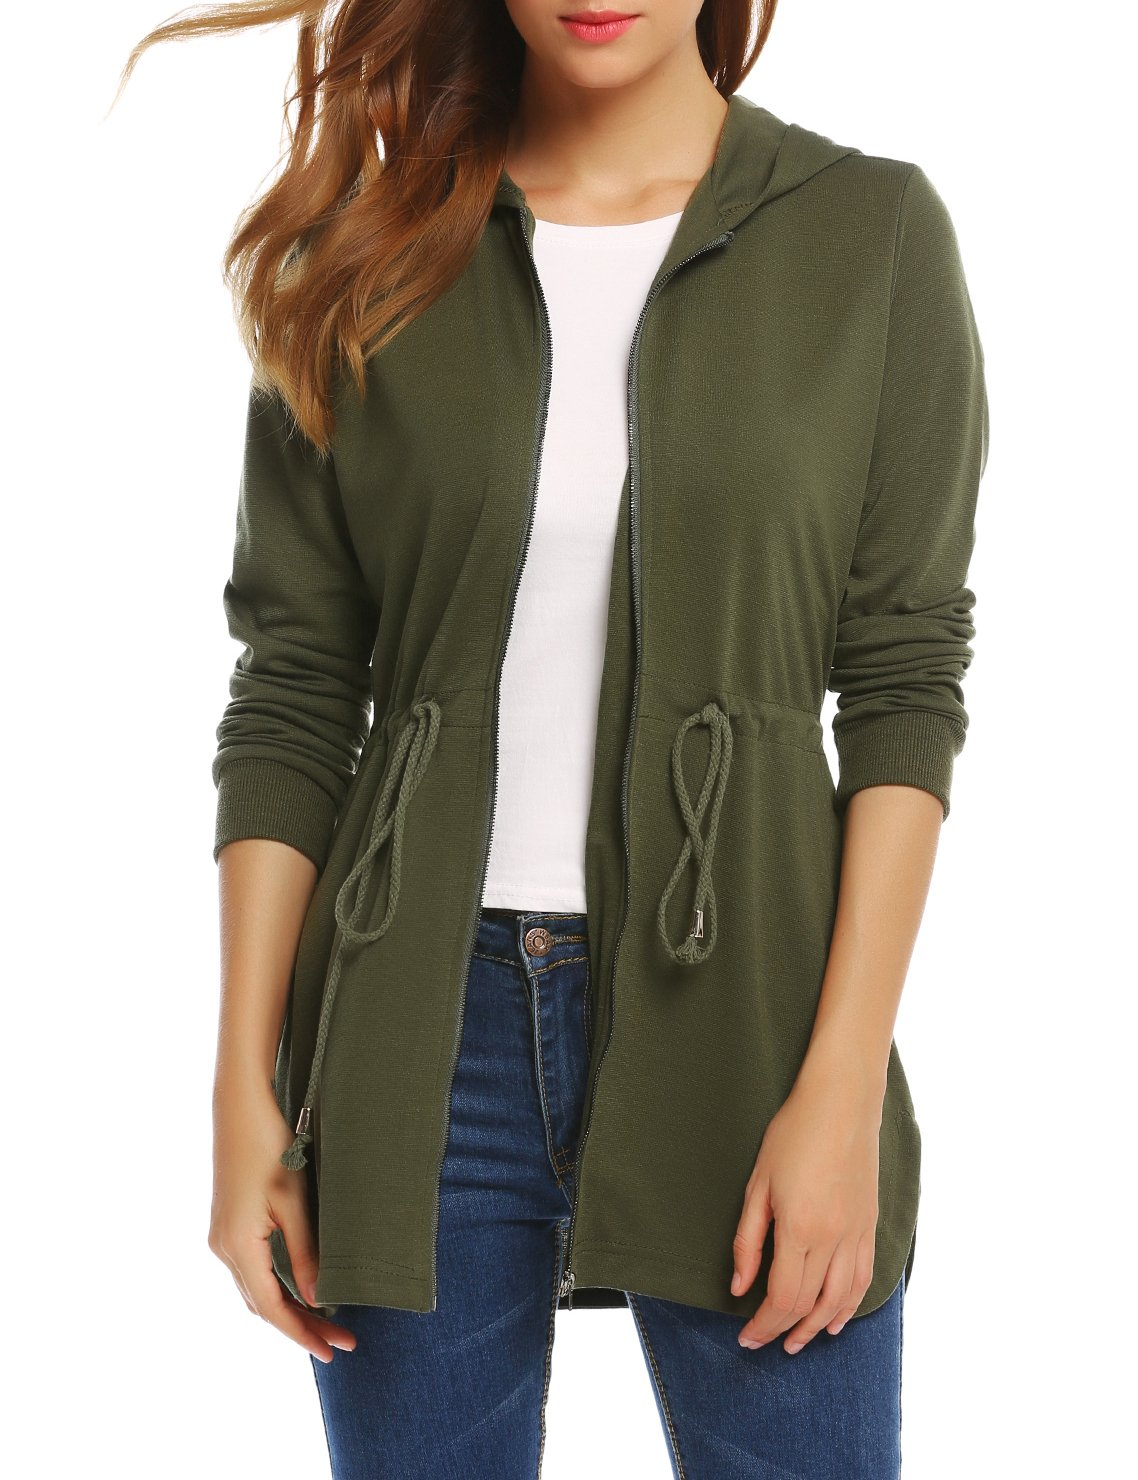 SE MIU Women's Long Sleeve Curved Hem Zip Up Hooded Jacket With Drawstring